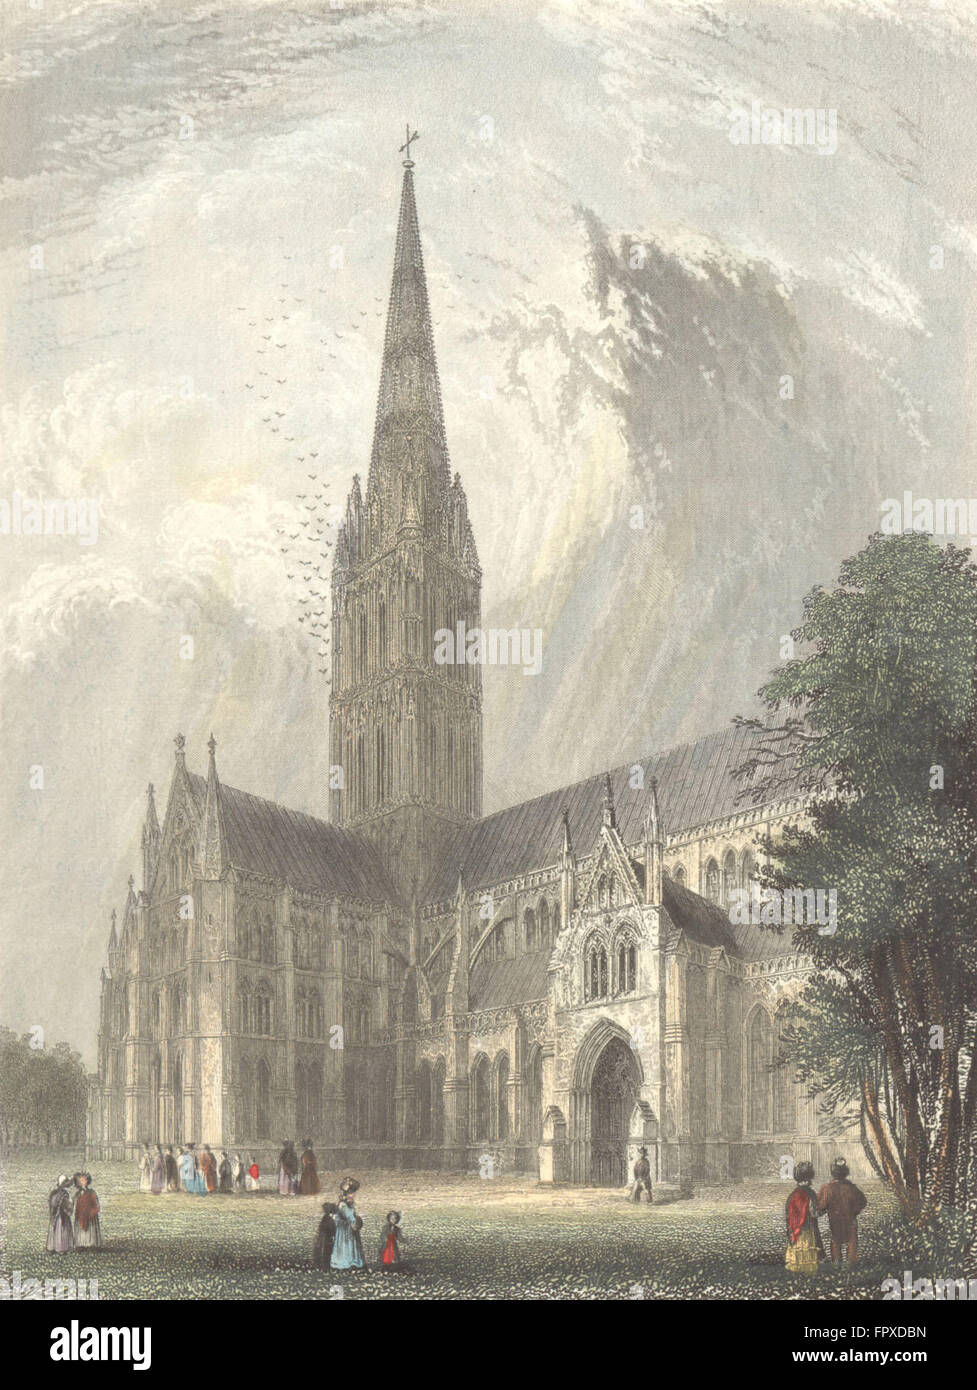 WILTS: Salisbury Cathedral, antique print 1836 Stock Photo